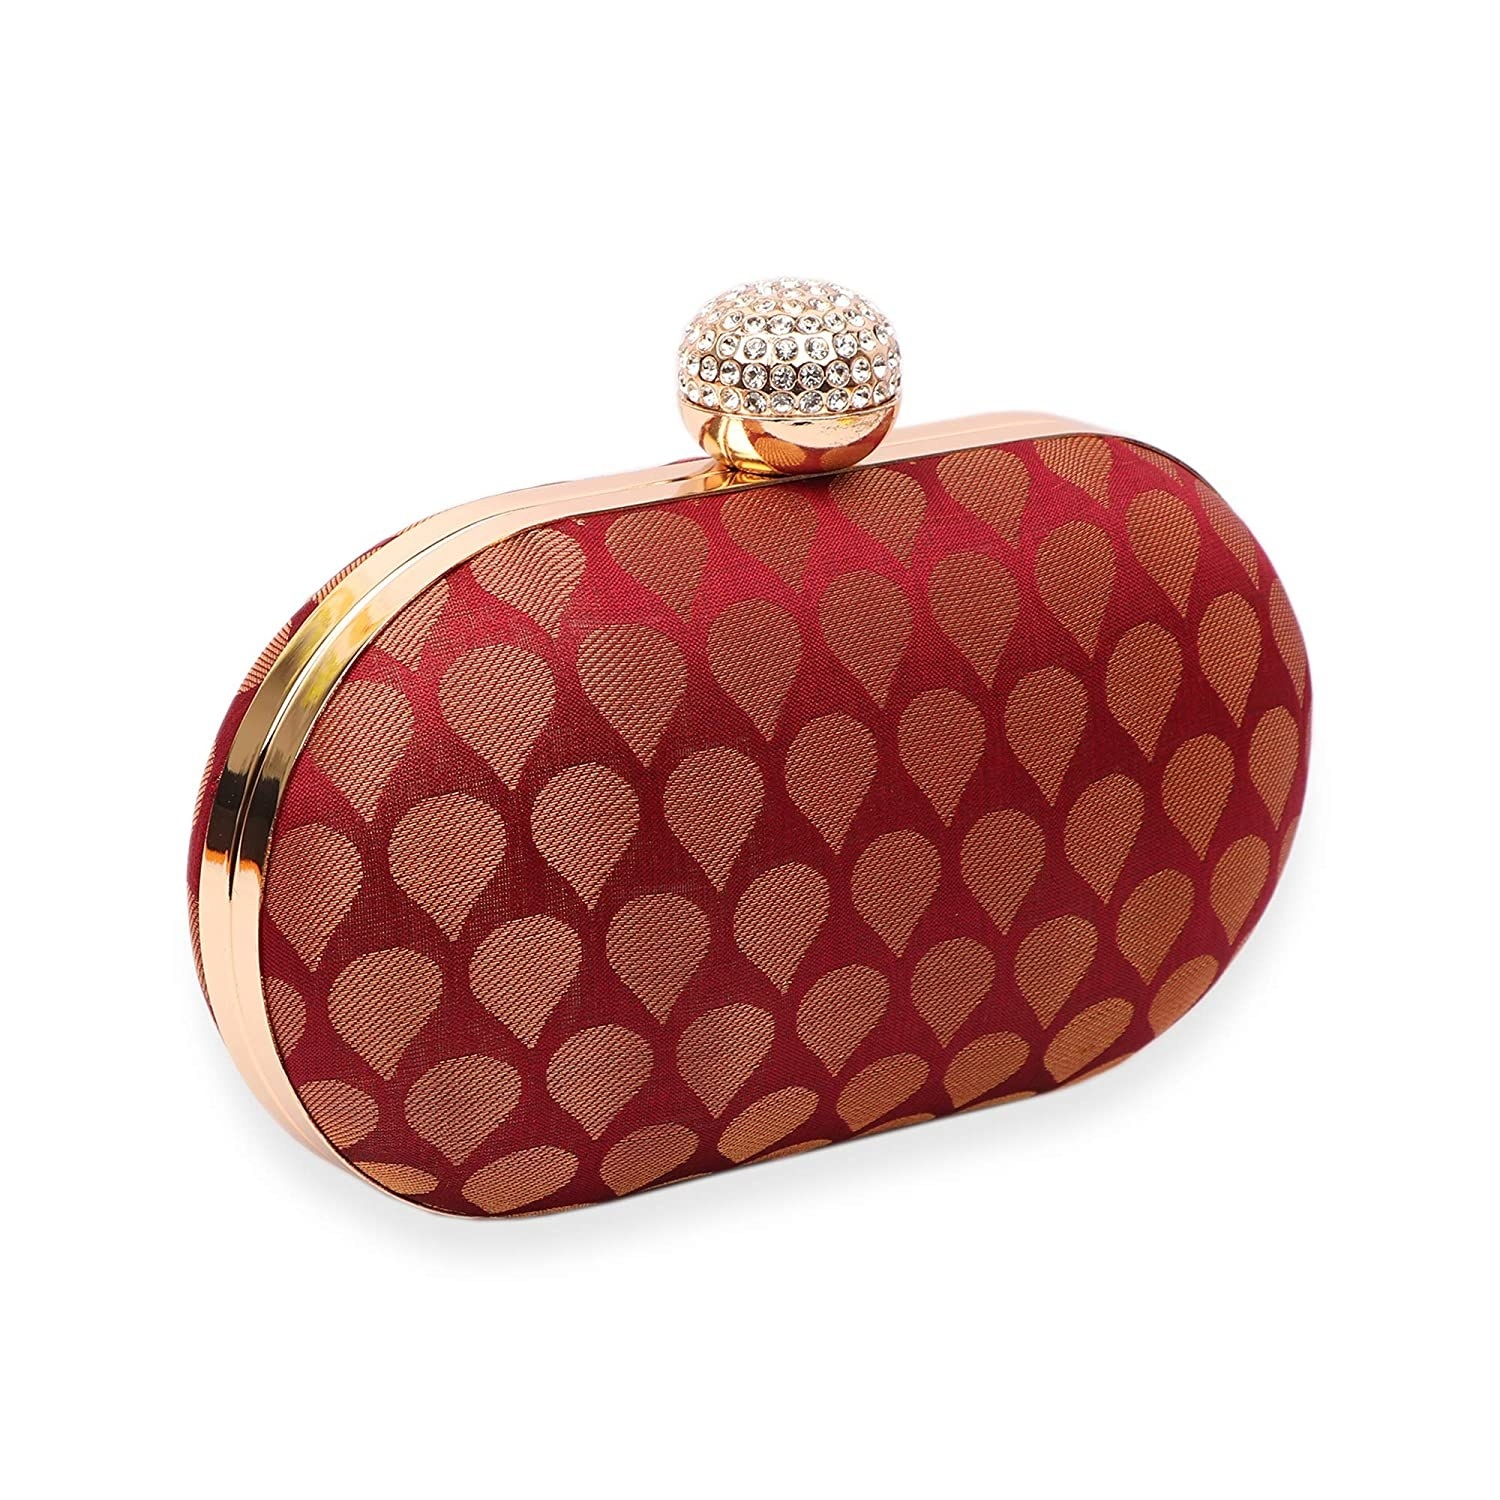 A patterned red and golden clutch